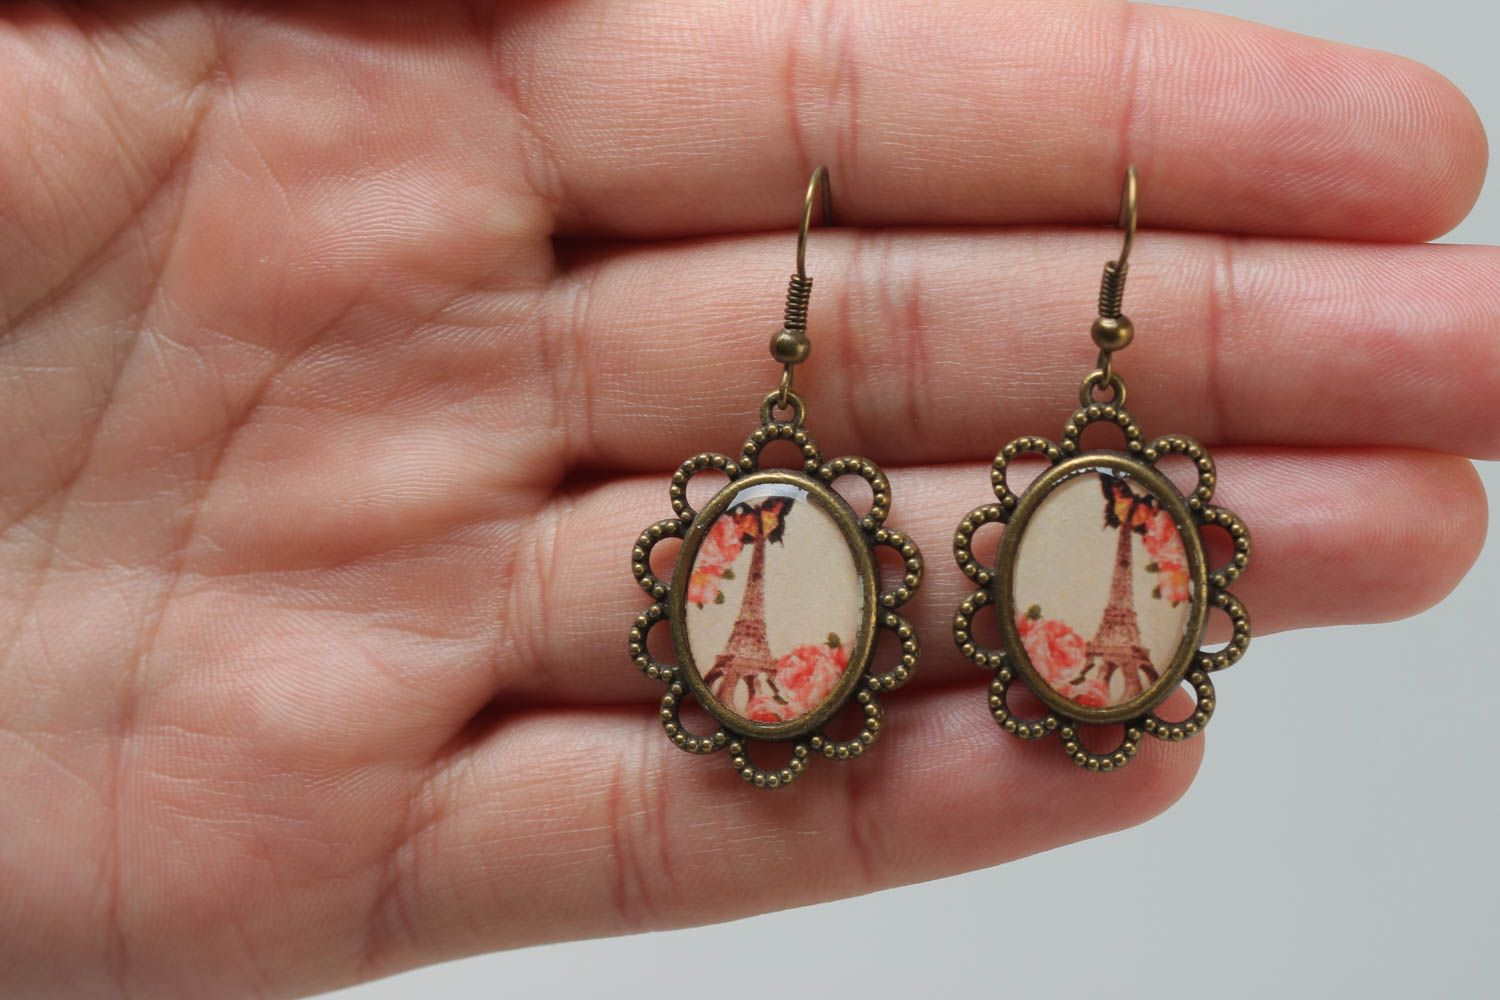 Handmade vintage oval earrings made of metal and glass glaze with a print of Eiffel tower photo 5